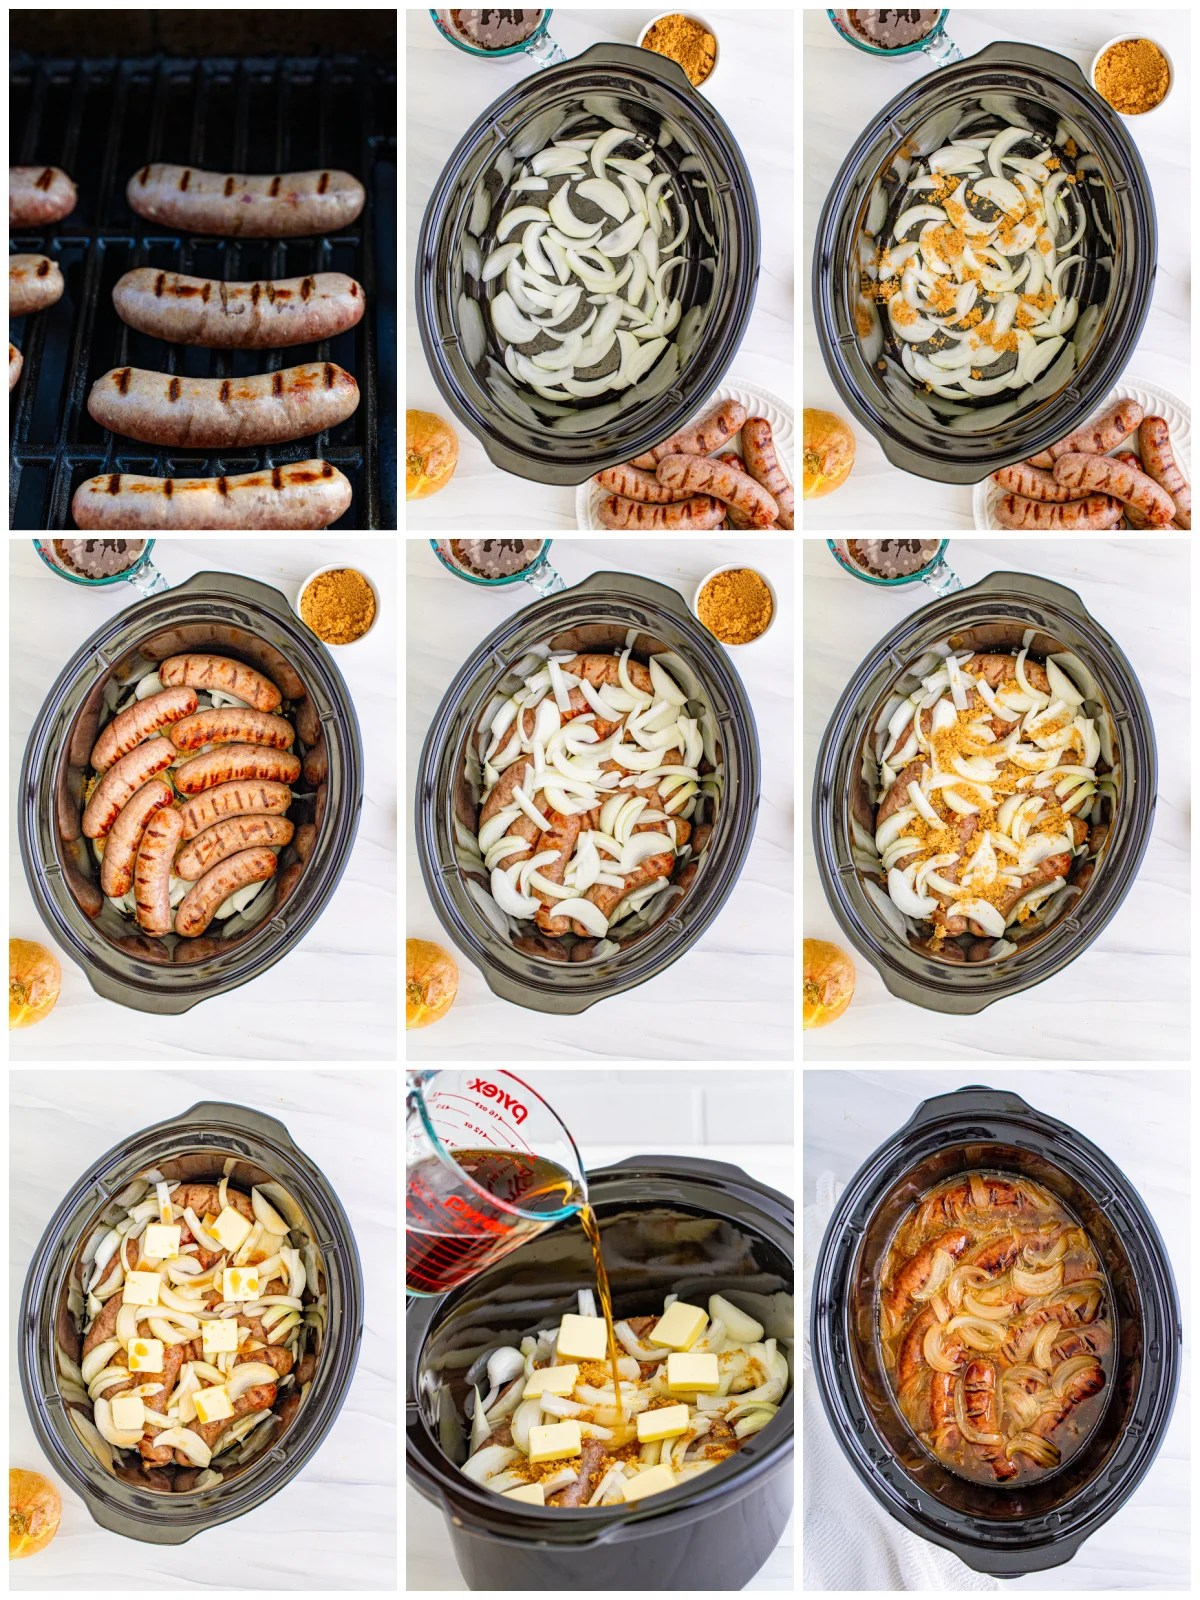 Step by step photos on how to make Slow Cooker Beer Brats.